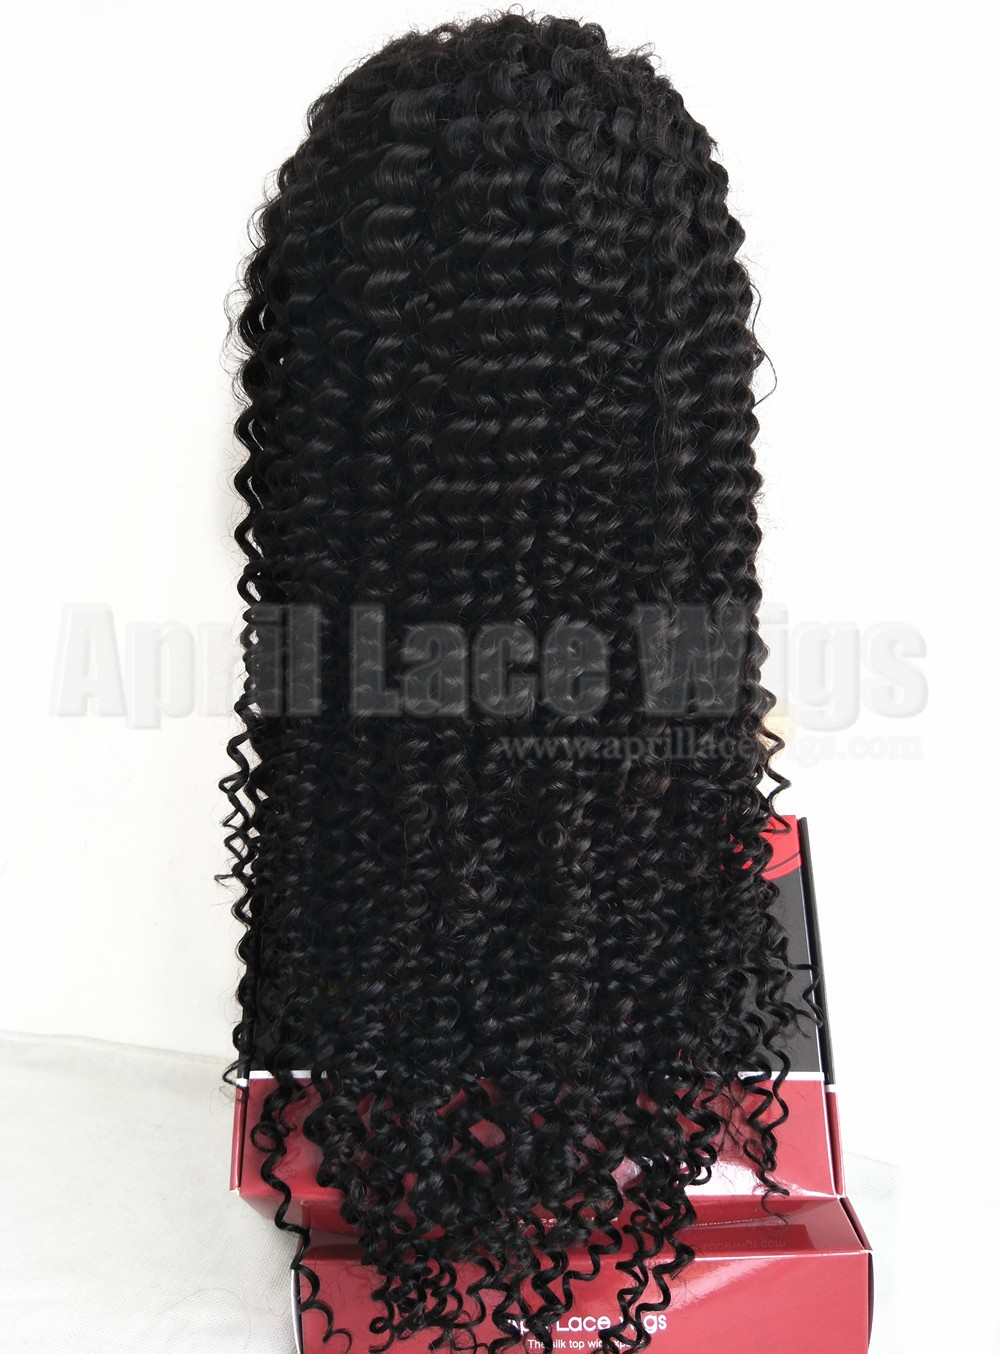 Spanish curl  glueless 13 by 6 lace front wig 150% density preplucked hairline LF0602